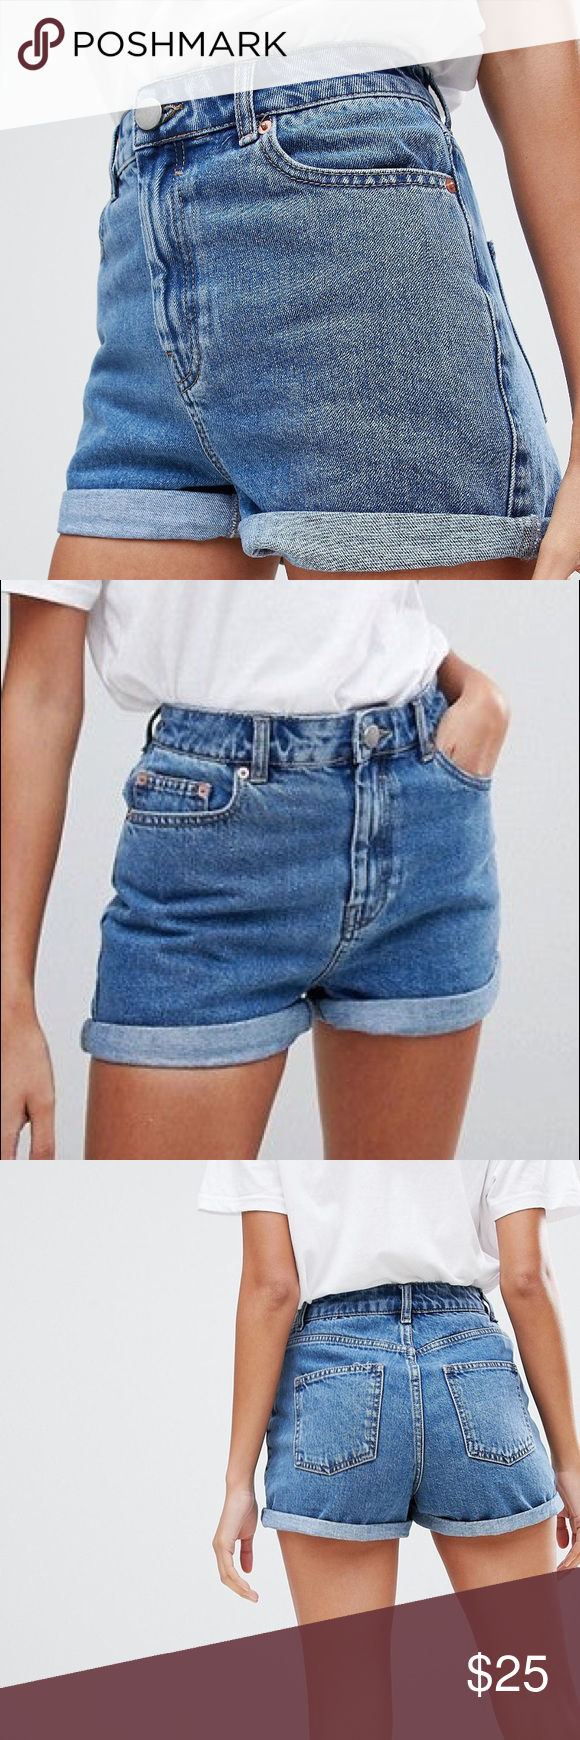 Levis High Waisted Cut Off Denim Shorts with a bow on